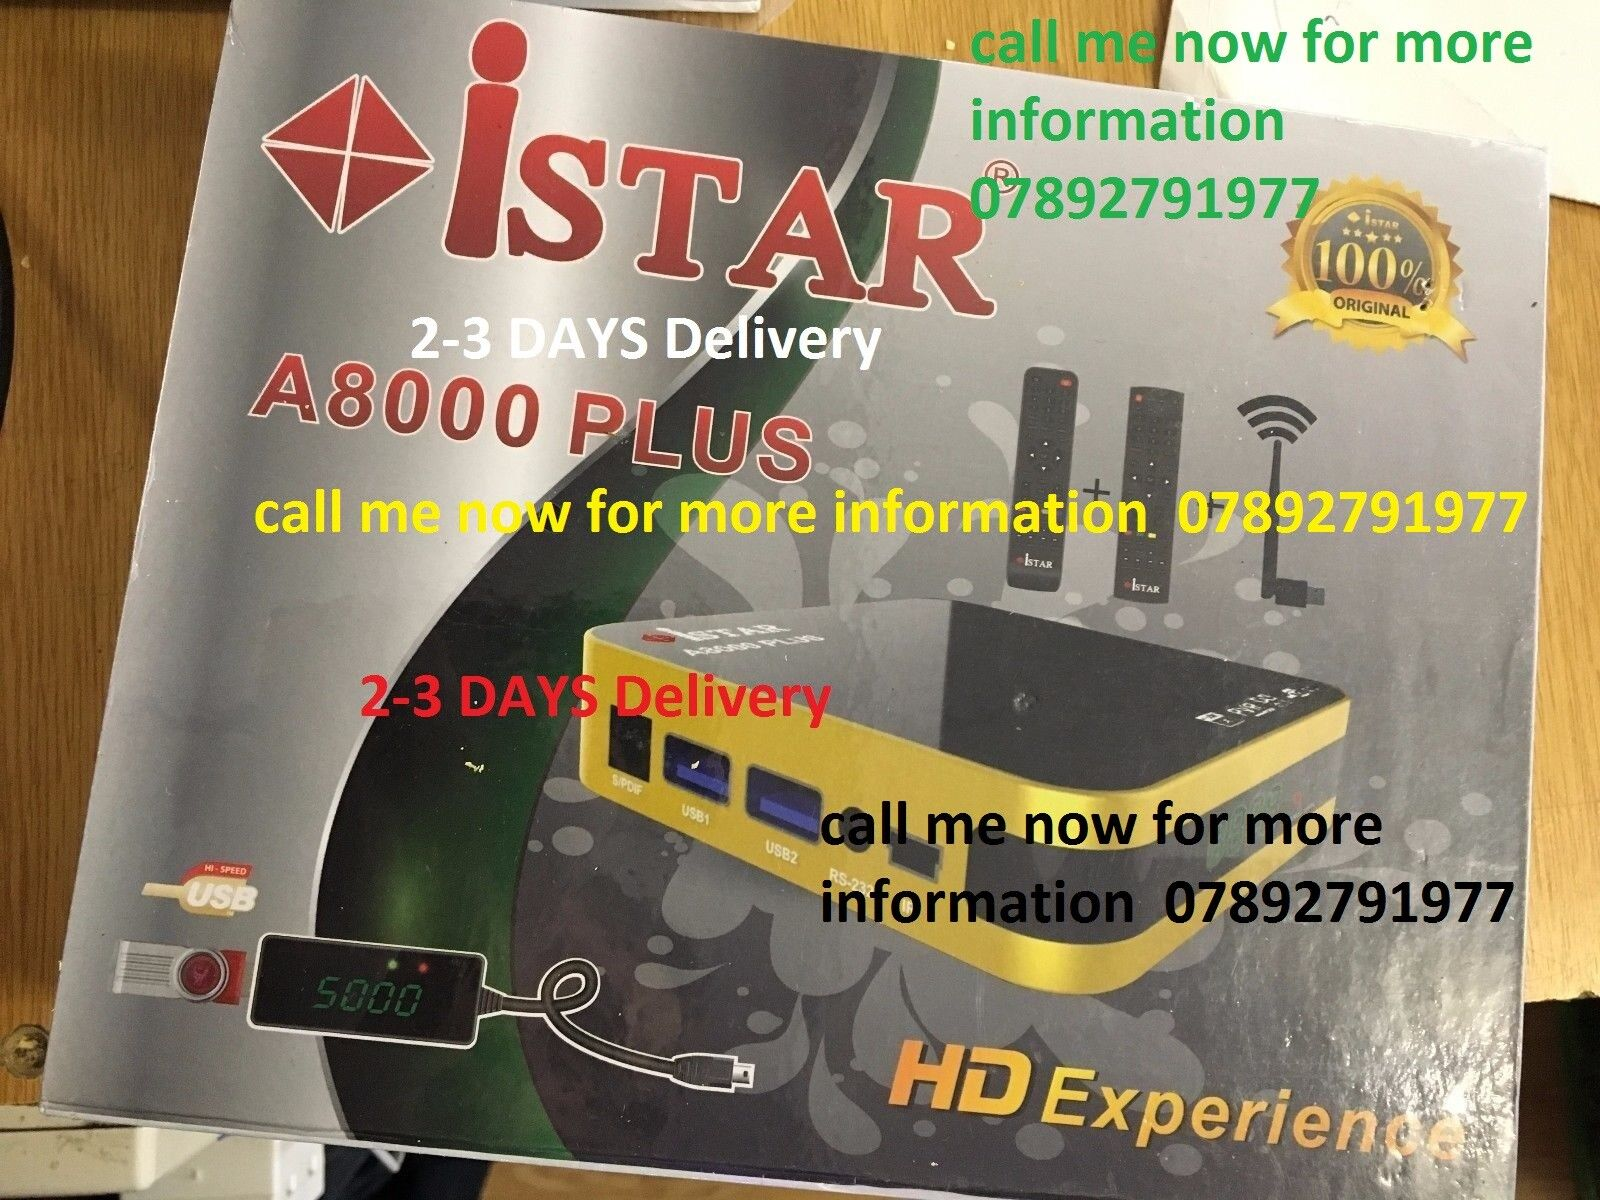 istar korea A8000 Plus With 6 Months Free Online Tv 3000 Channels no